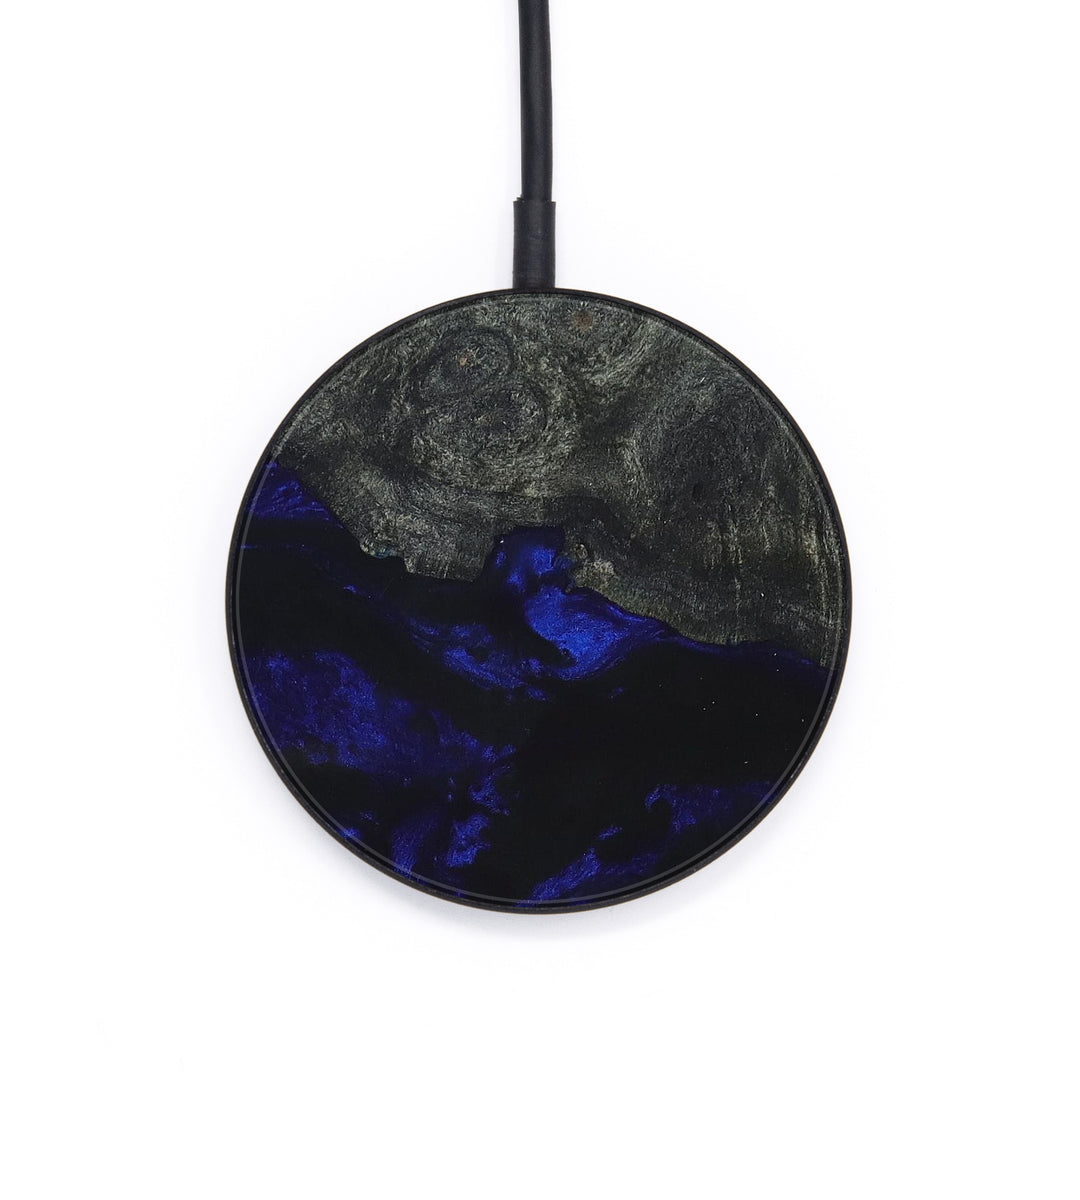 Circle Wood+Resin Wireless Charger - Fleurette (Dark Blue, 393326)